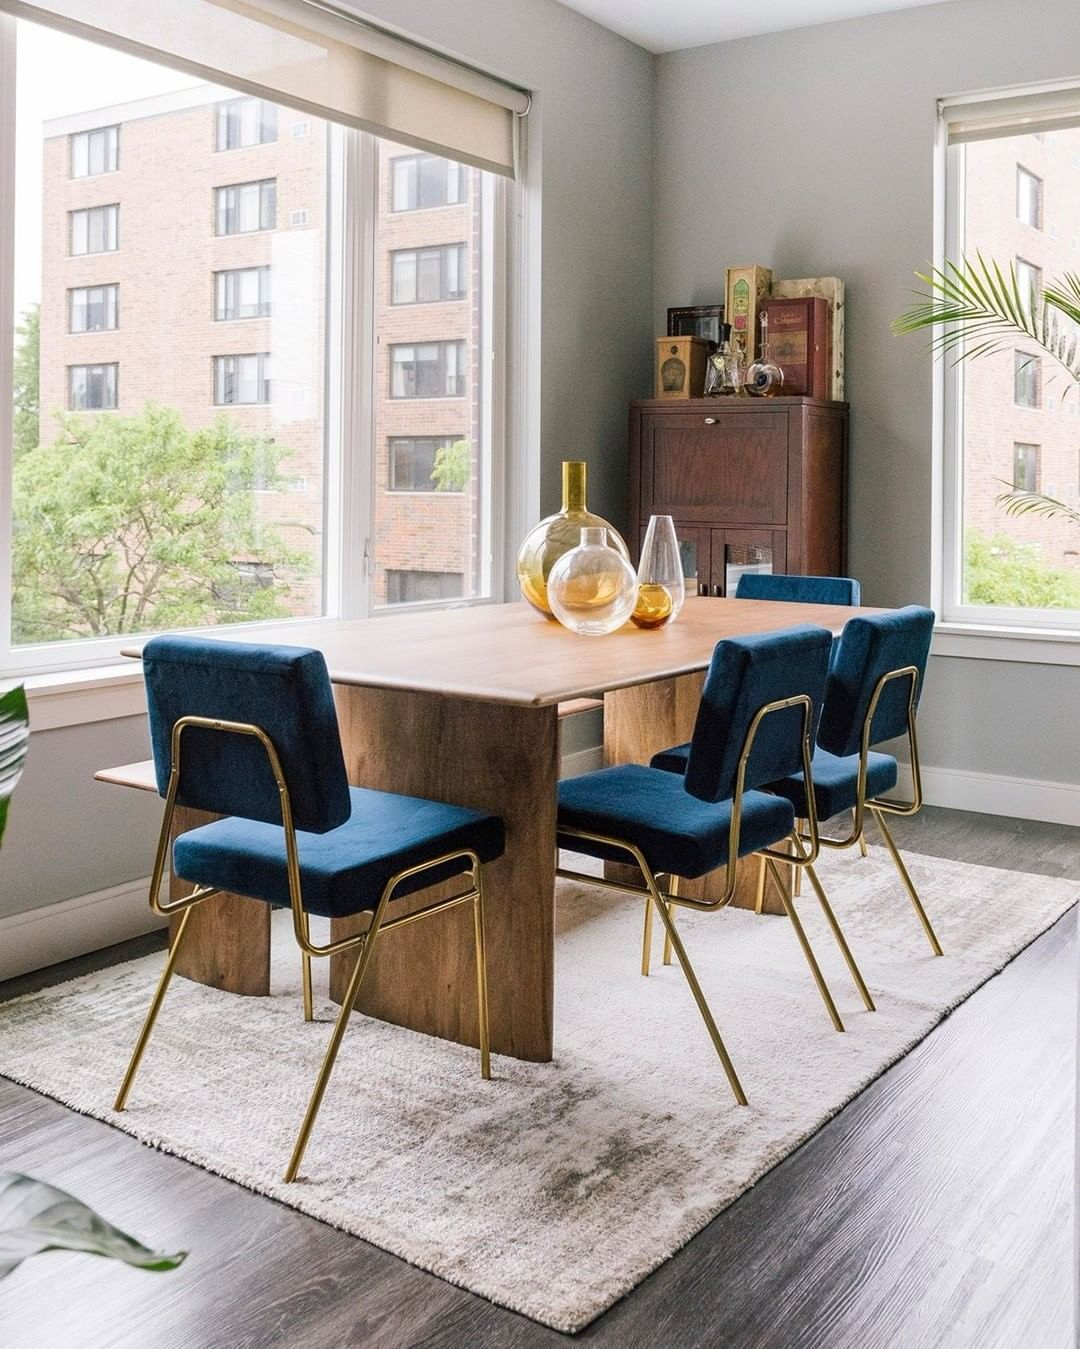 West Elm Furniture Decor On Instagram Sundaysupper Has Never Looked Better A Modern Dining Table With Bench West Elm Dining Table Velvet Dining Chairs